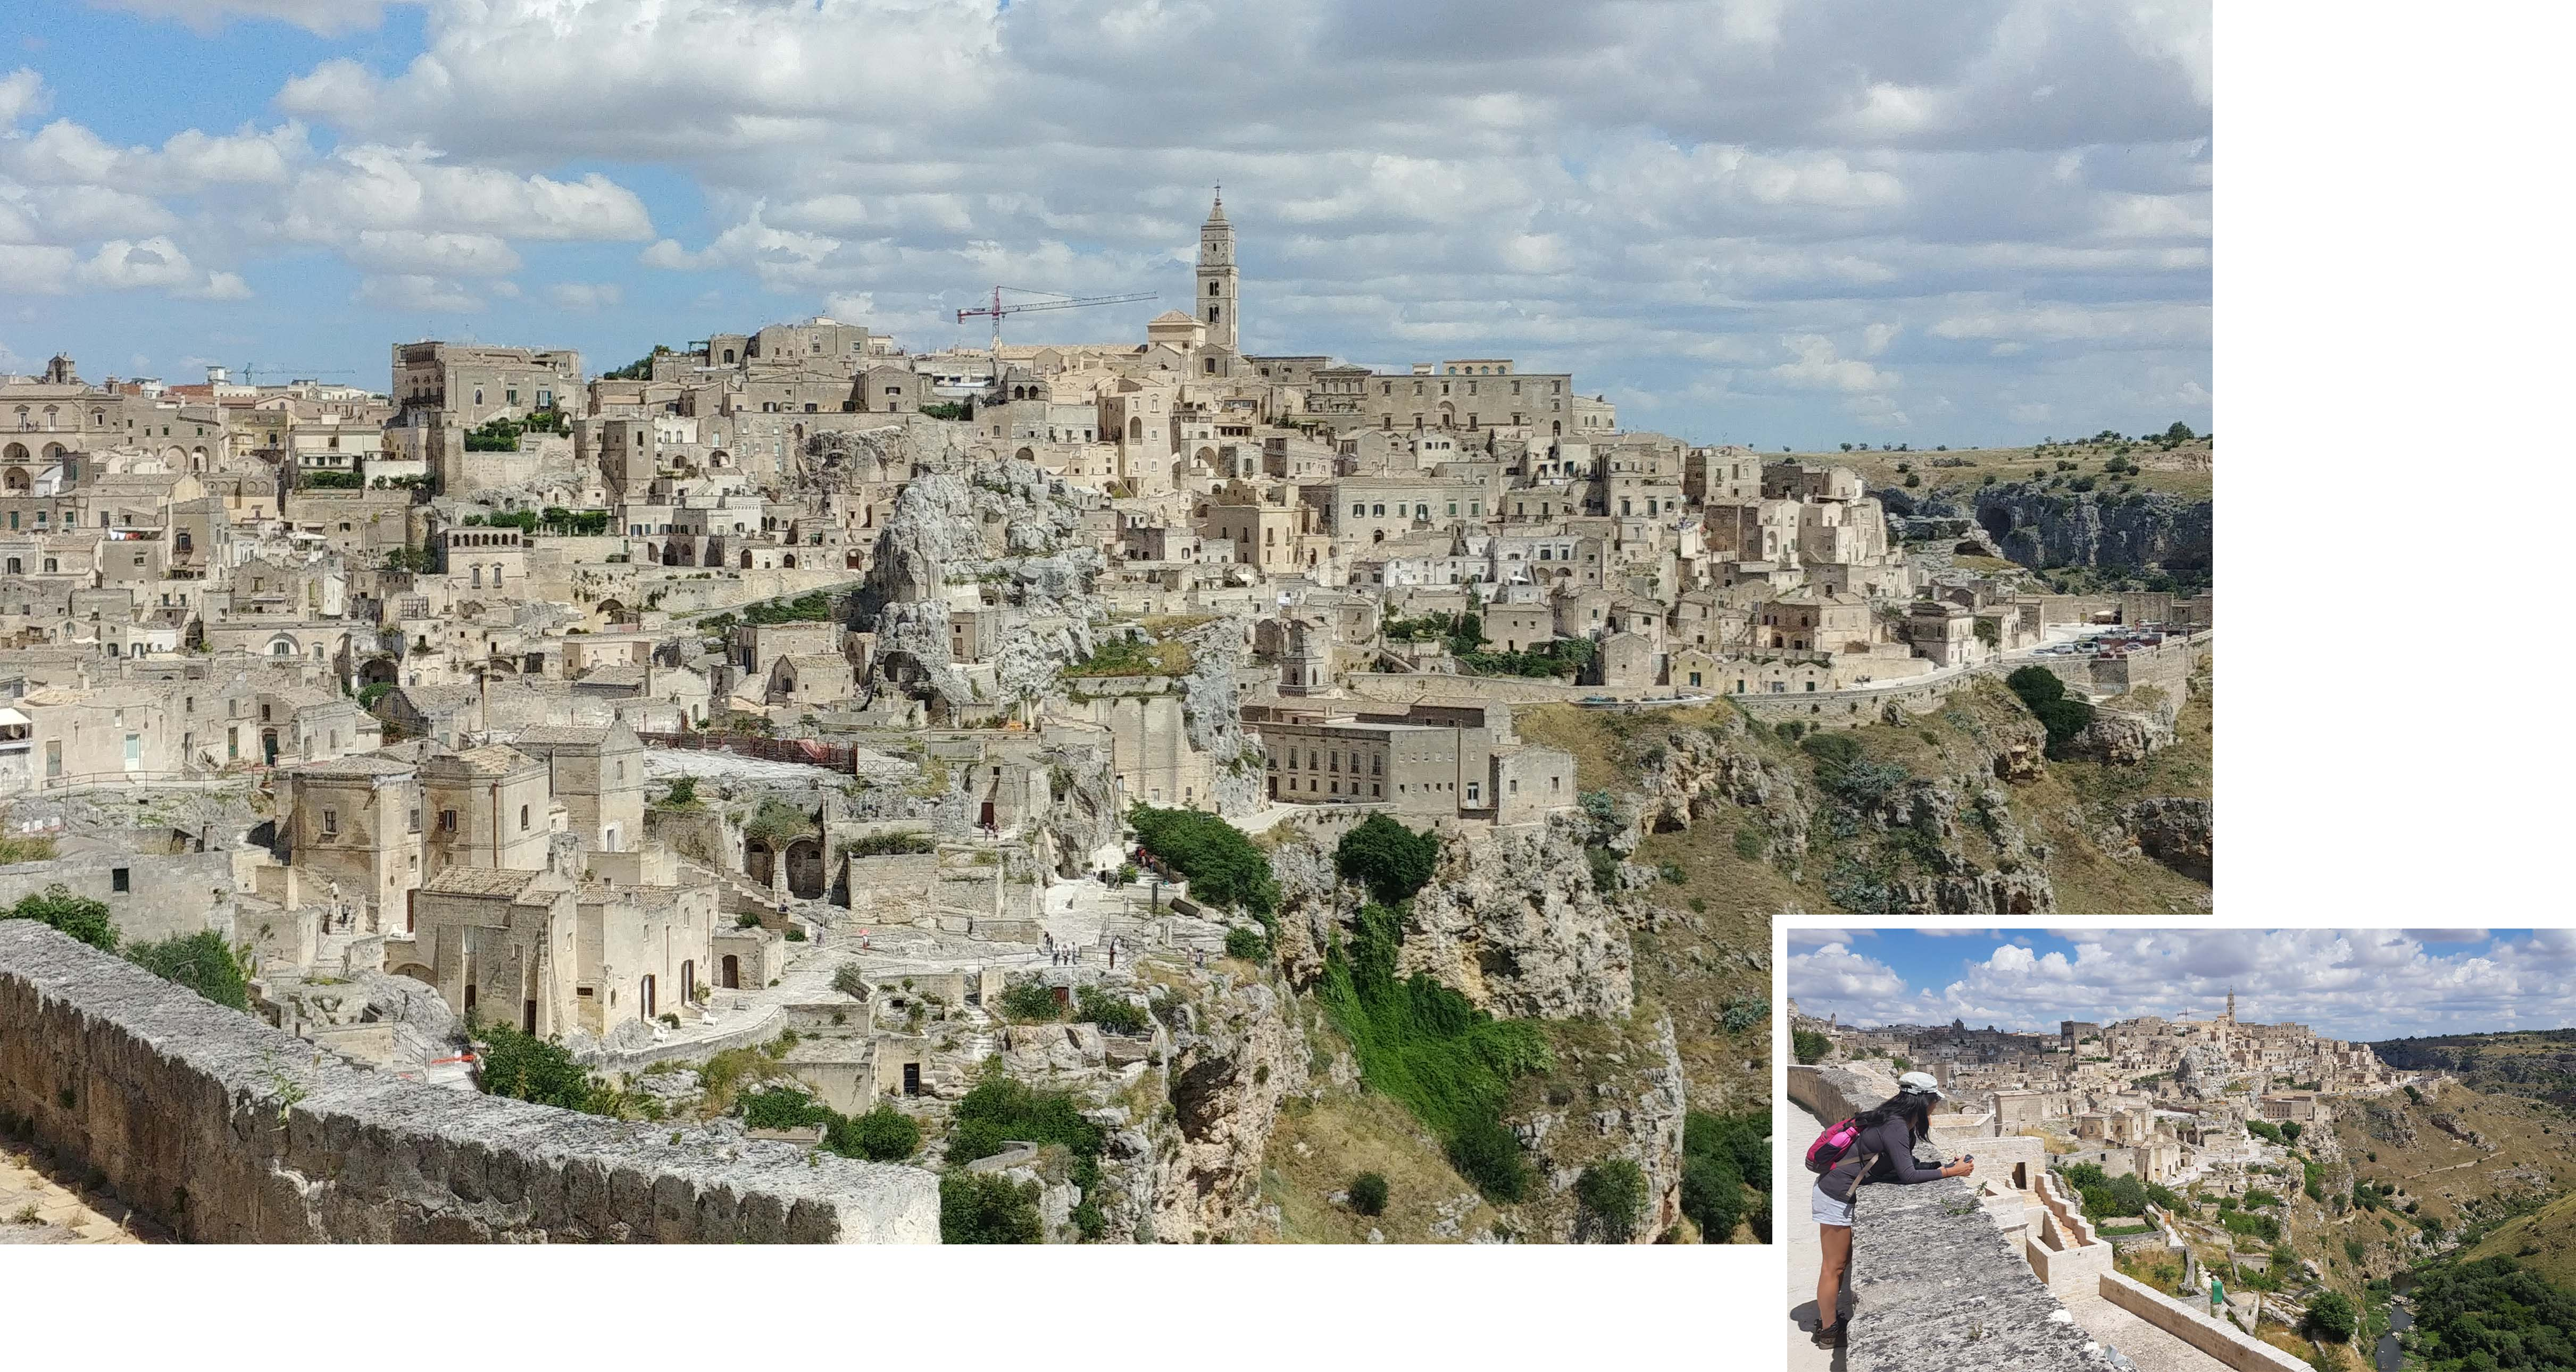 Matera at 10.30am in the morning